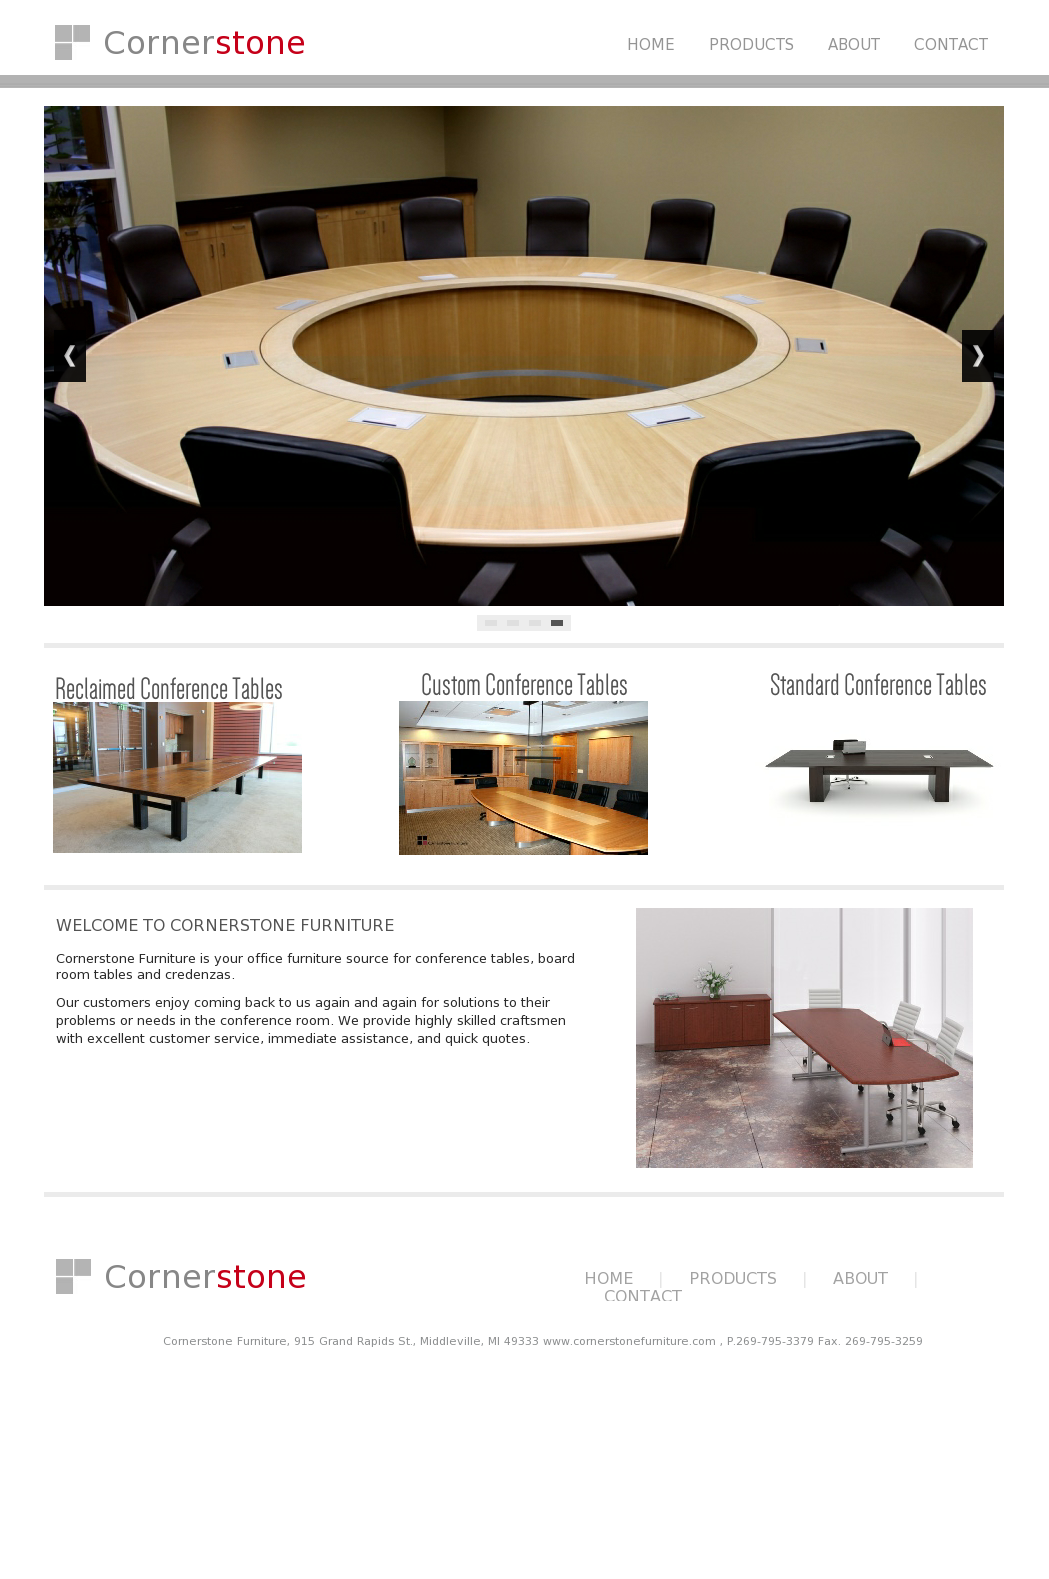 Cornerstone Furniture Company Profile Revenue Number Of Employees Funding News And